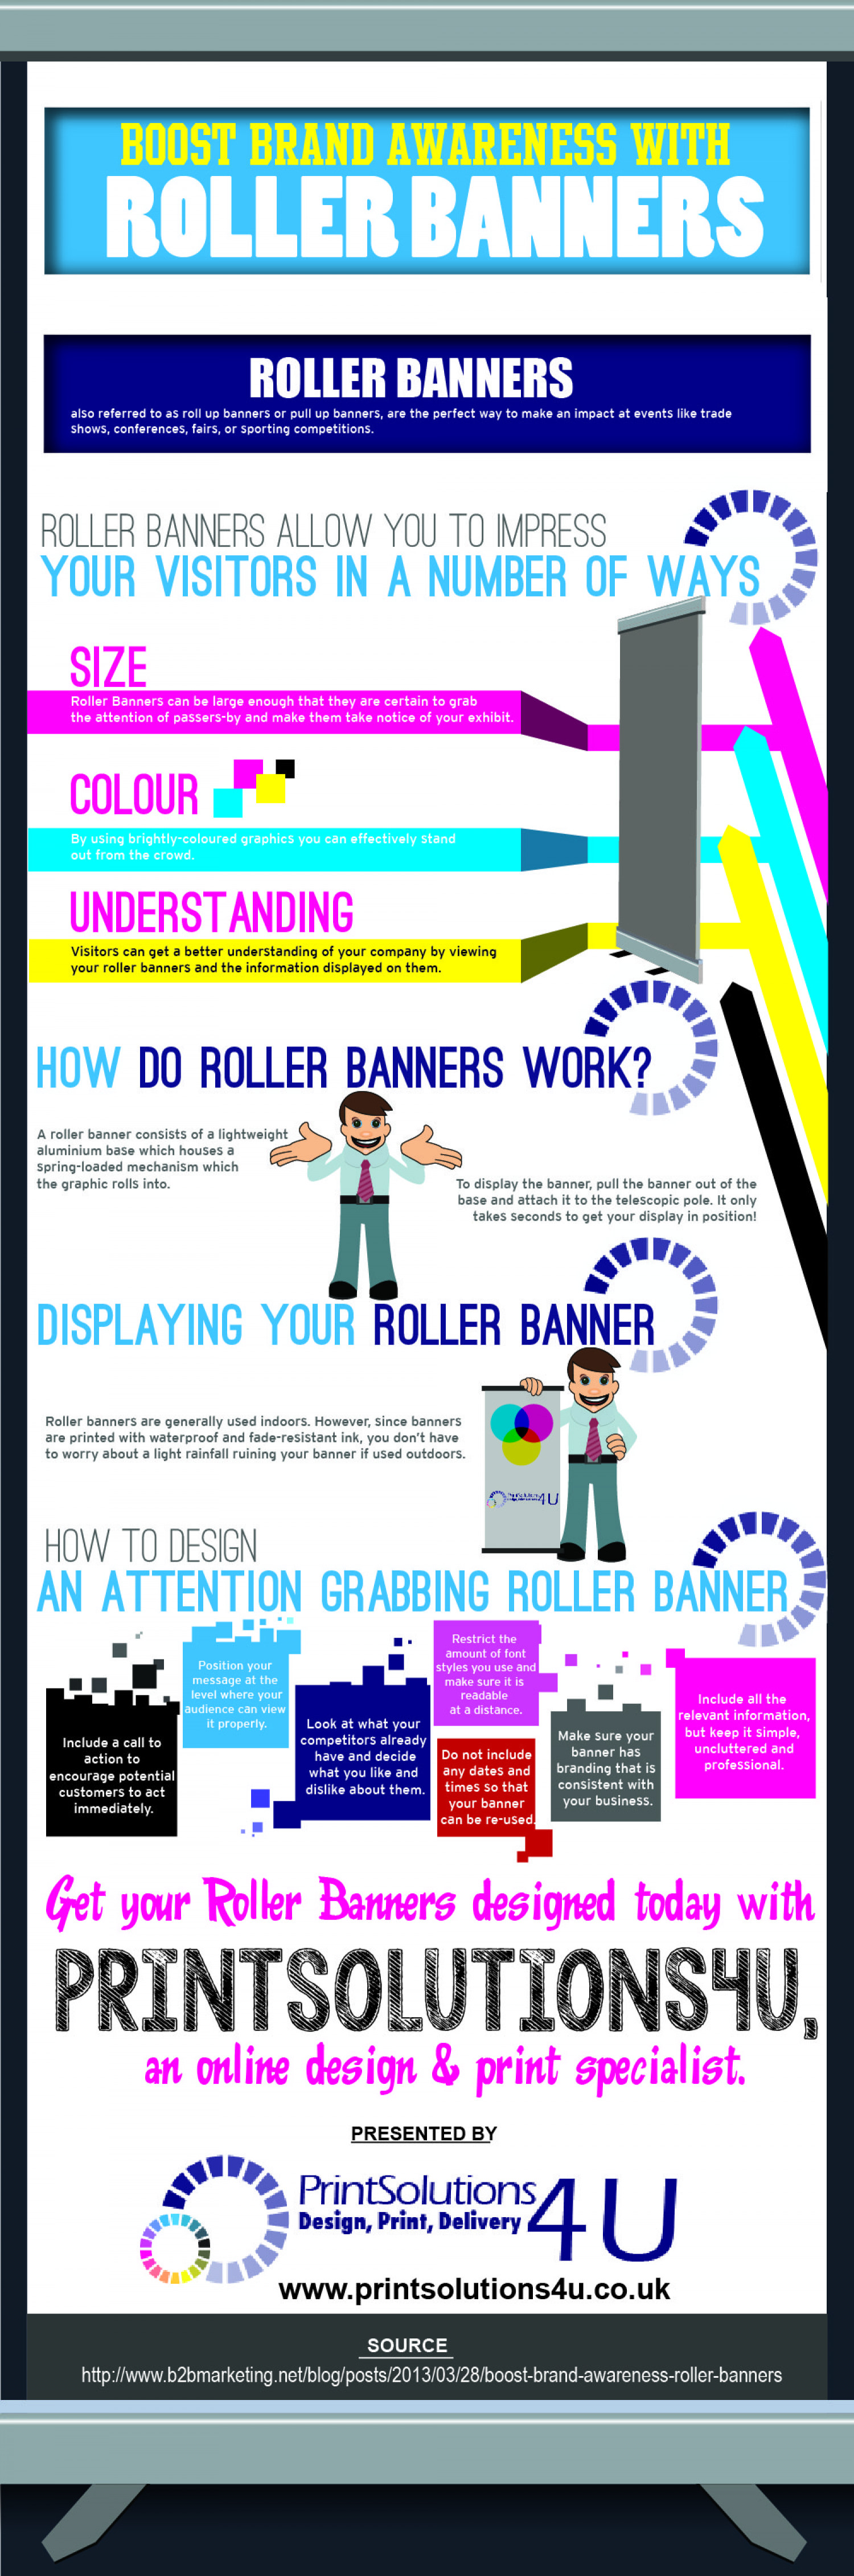 Roller Banners Infographic